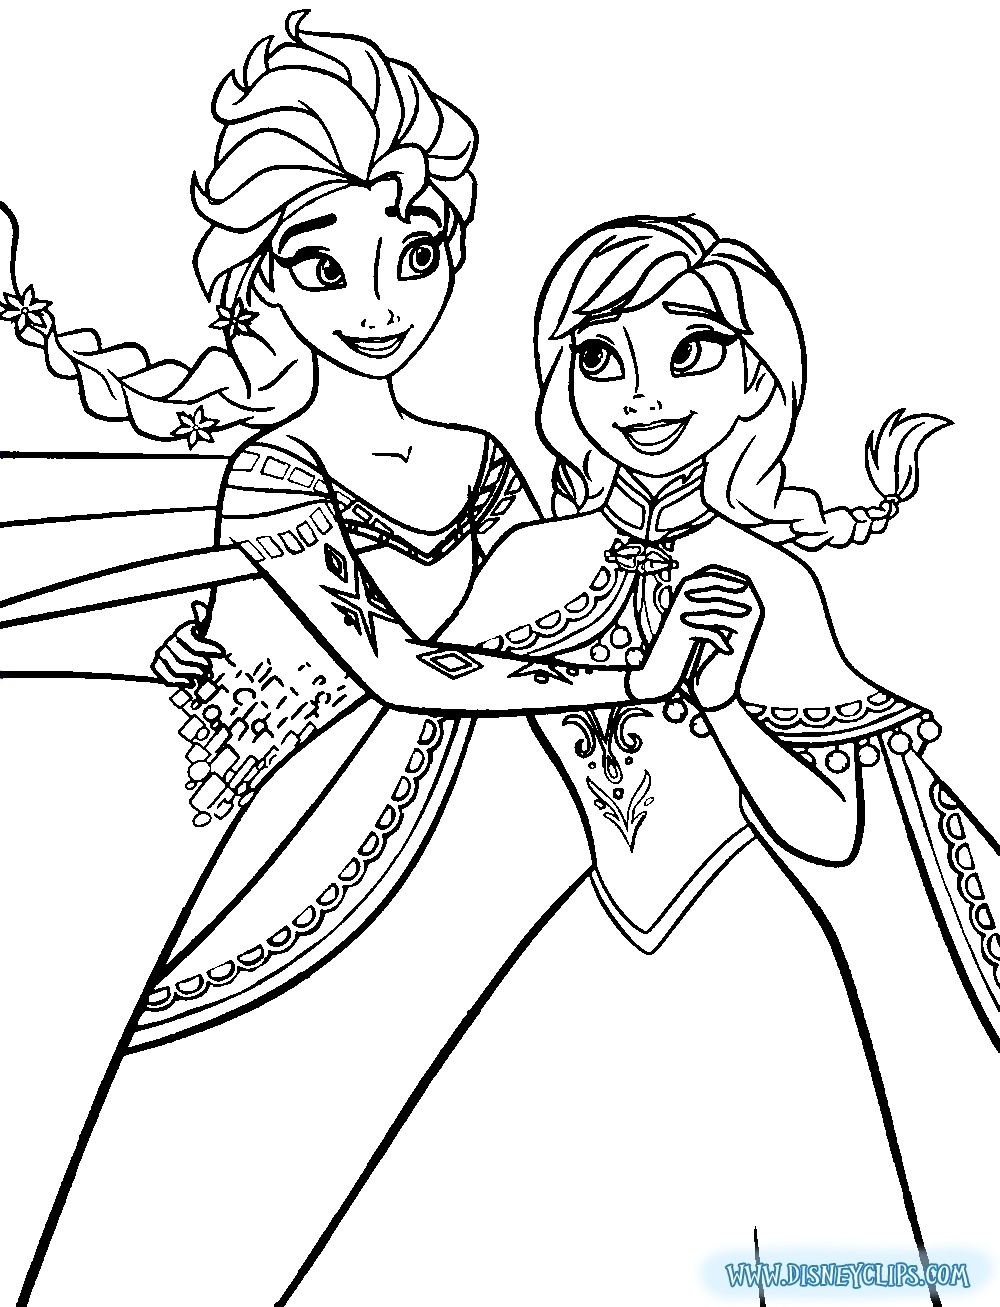 Elsa Frozen Coloring Page At Getdrawings Com Free For